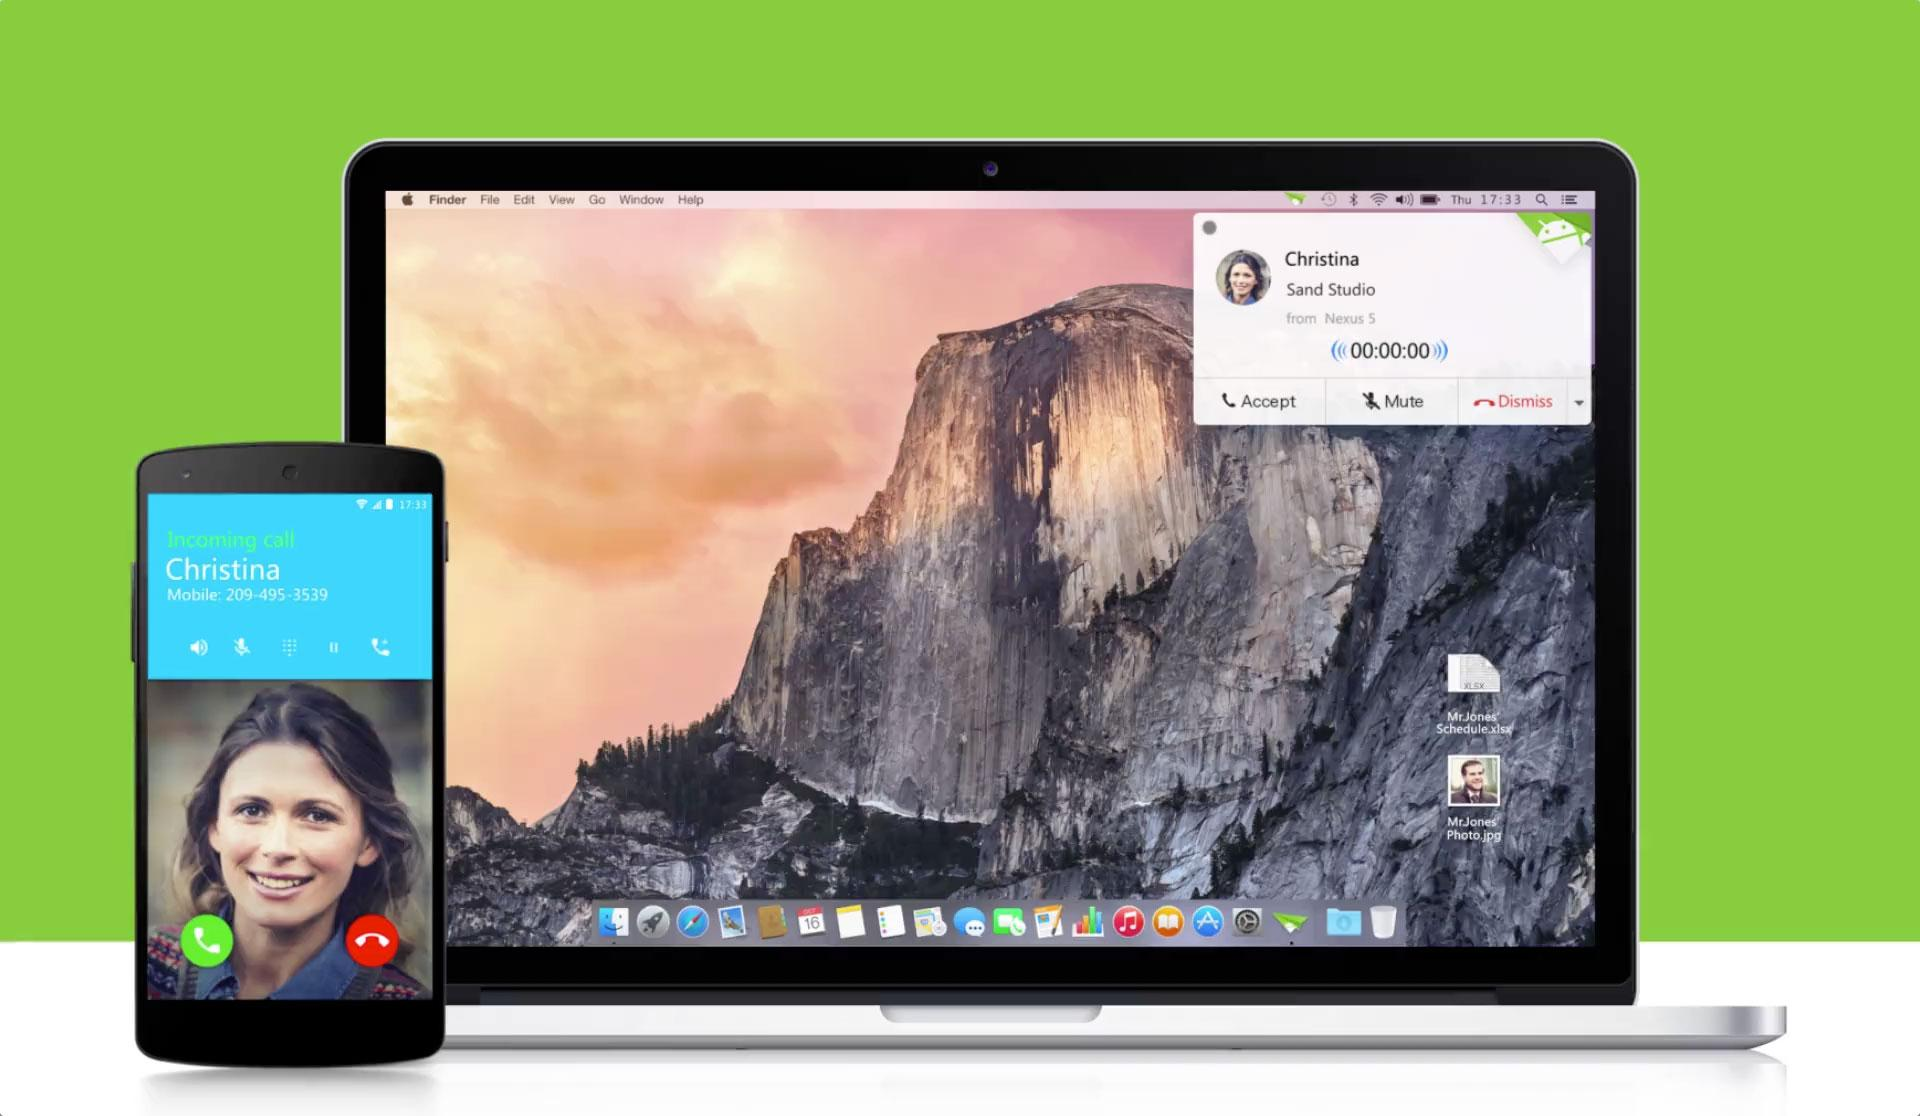 AirDroid 3 от Android vs. Continuity от Apple